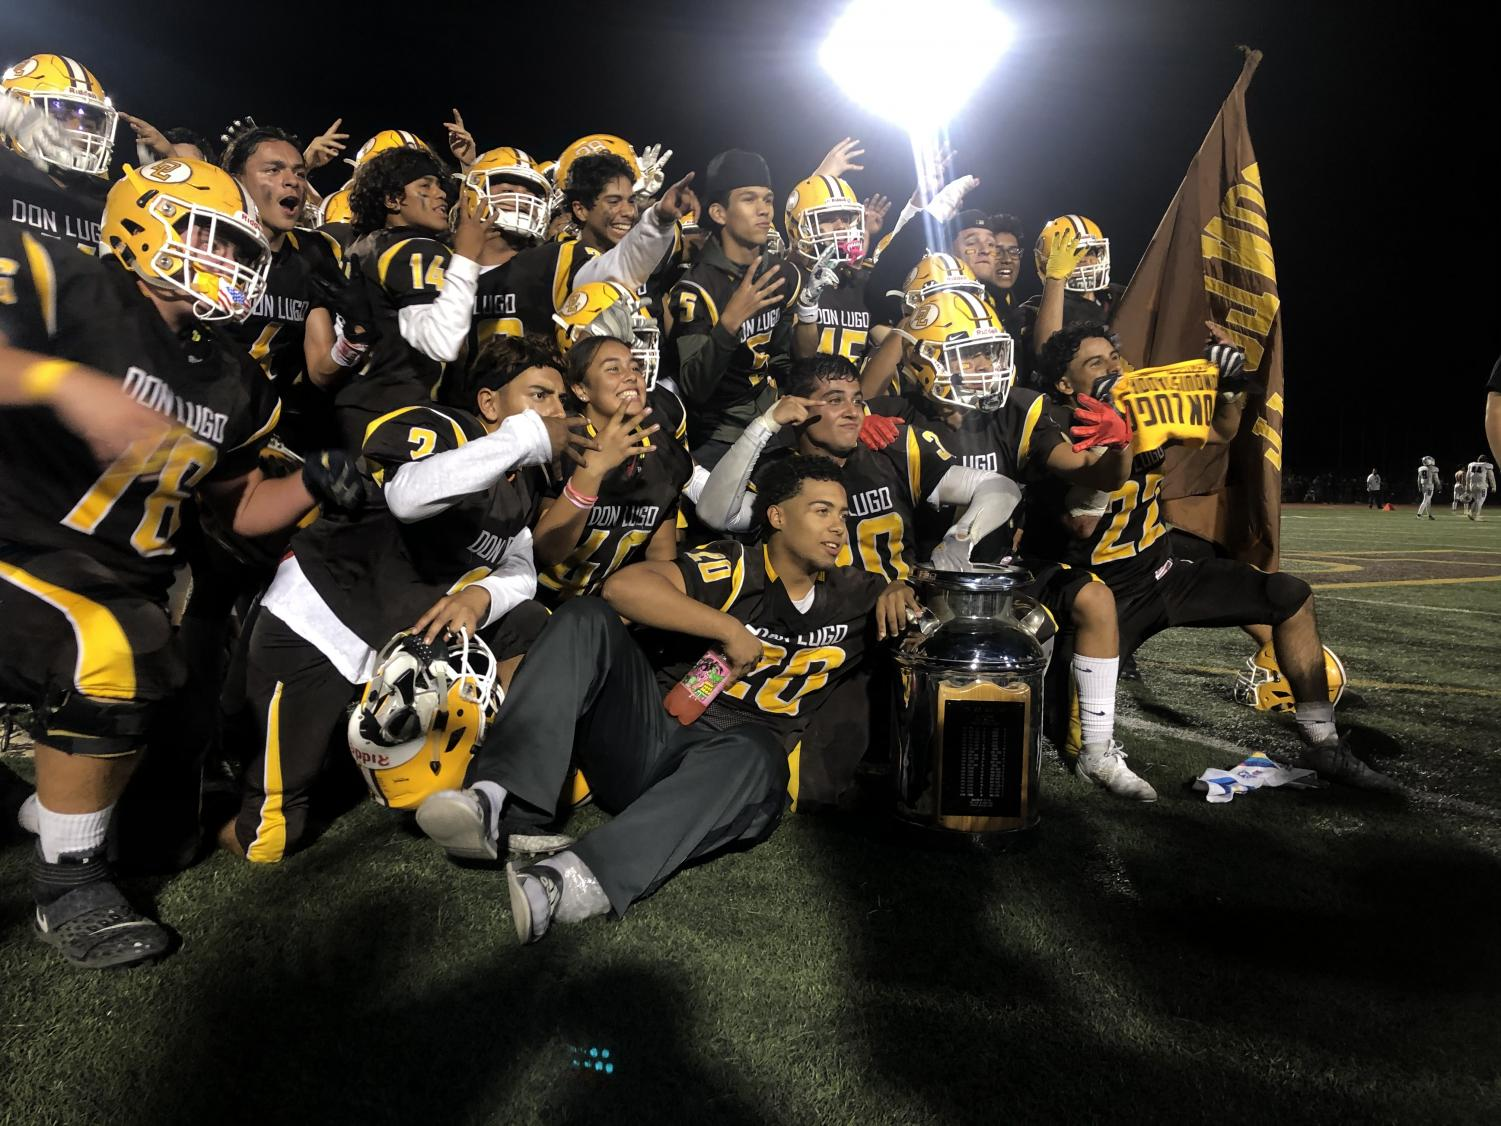 Lugo Football team win 4th straight Milkcan game 15-14. Football Team celebrating win with team picture with Milkcan trophy.